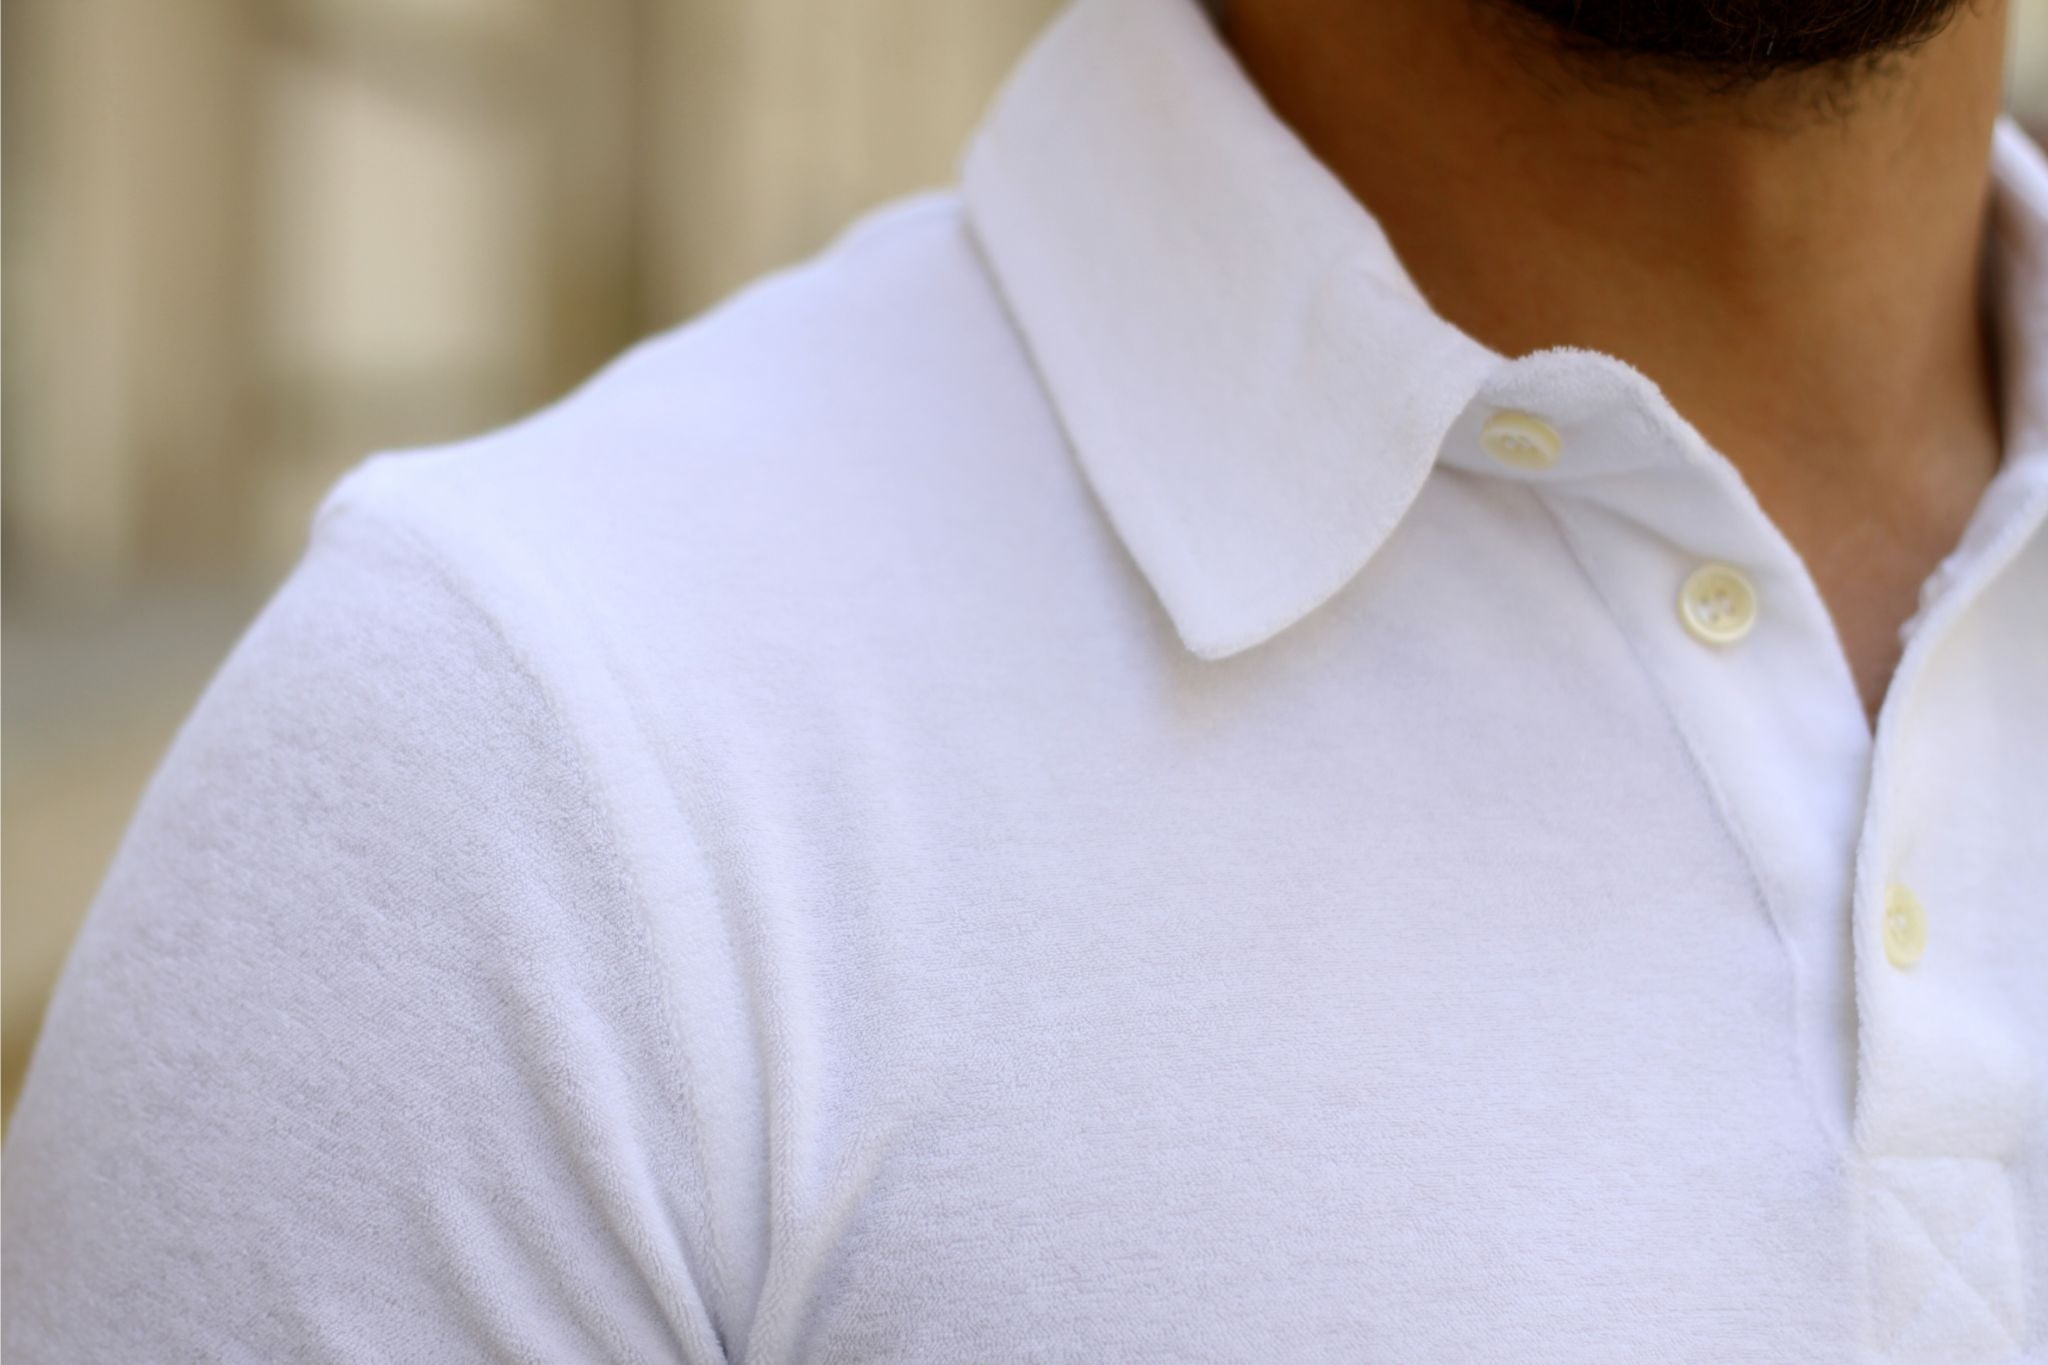 White terry jersey cloth polo shirt details - the collar